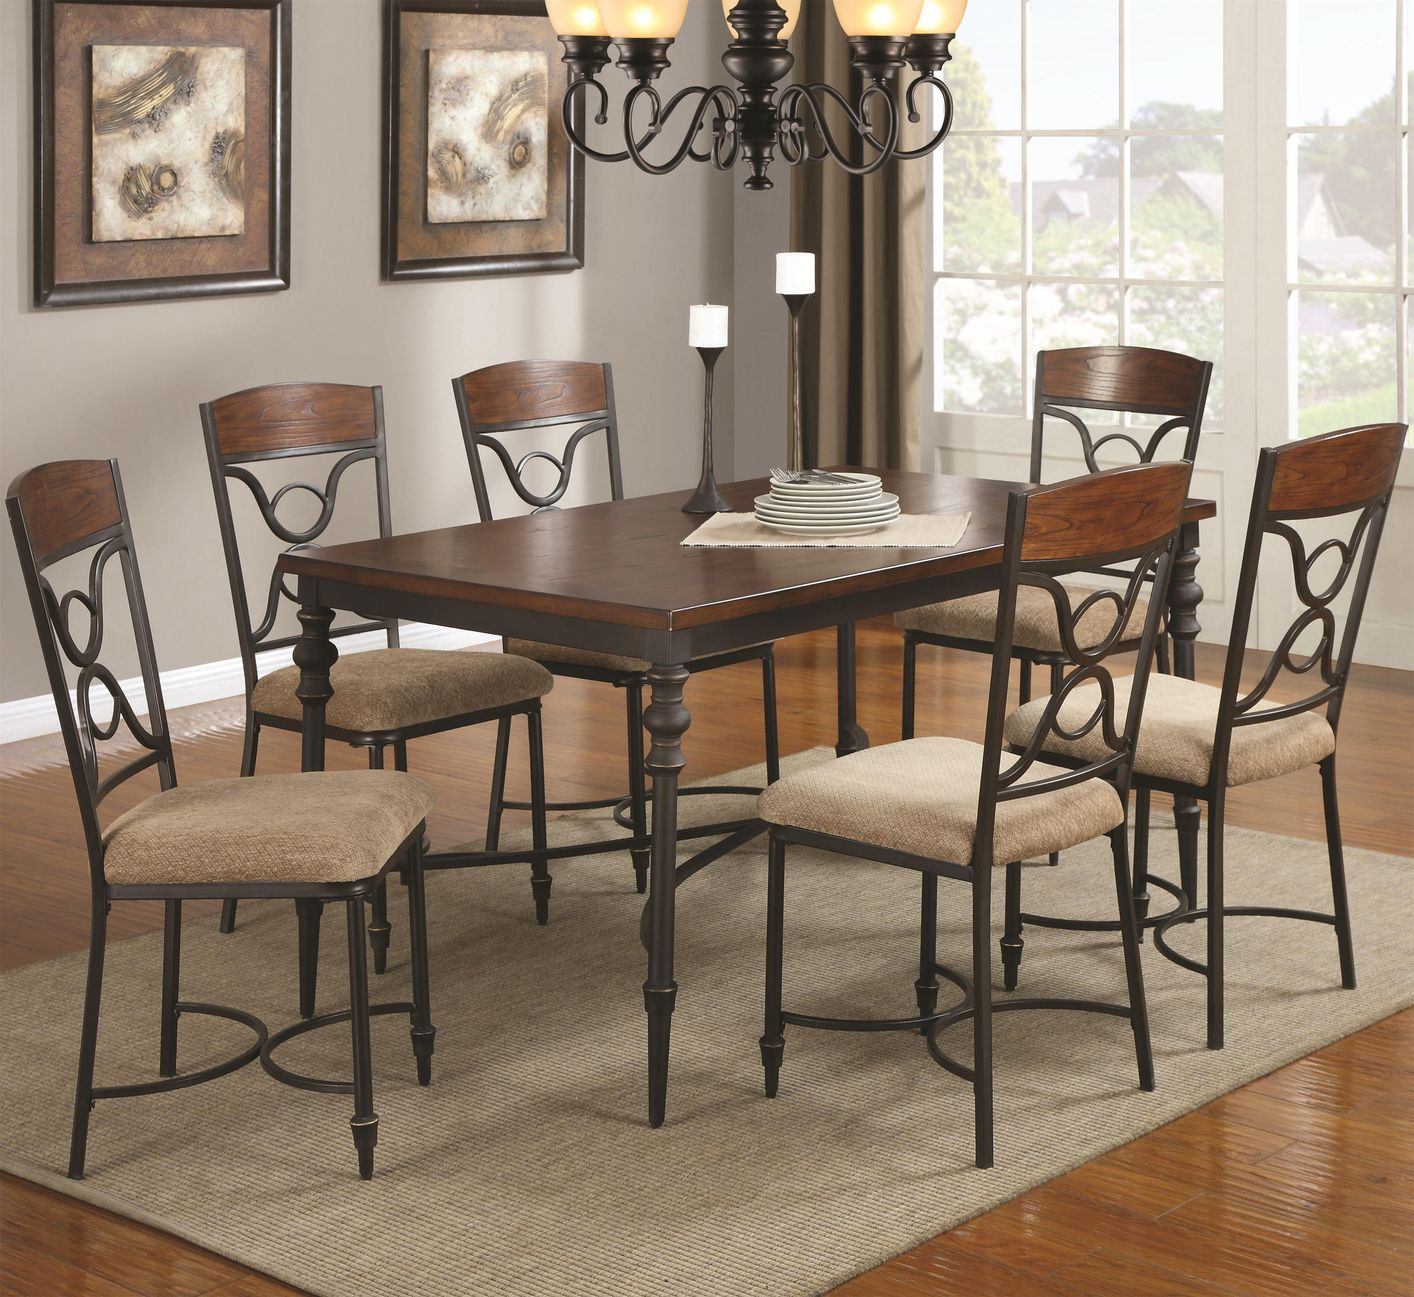 ... 120851 120852 Brown Metal And Wood Dining Table Set In Los Angeles Ca